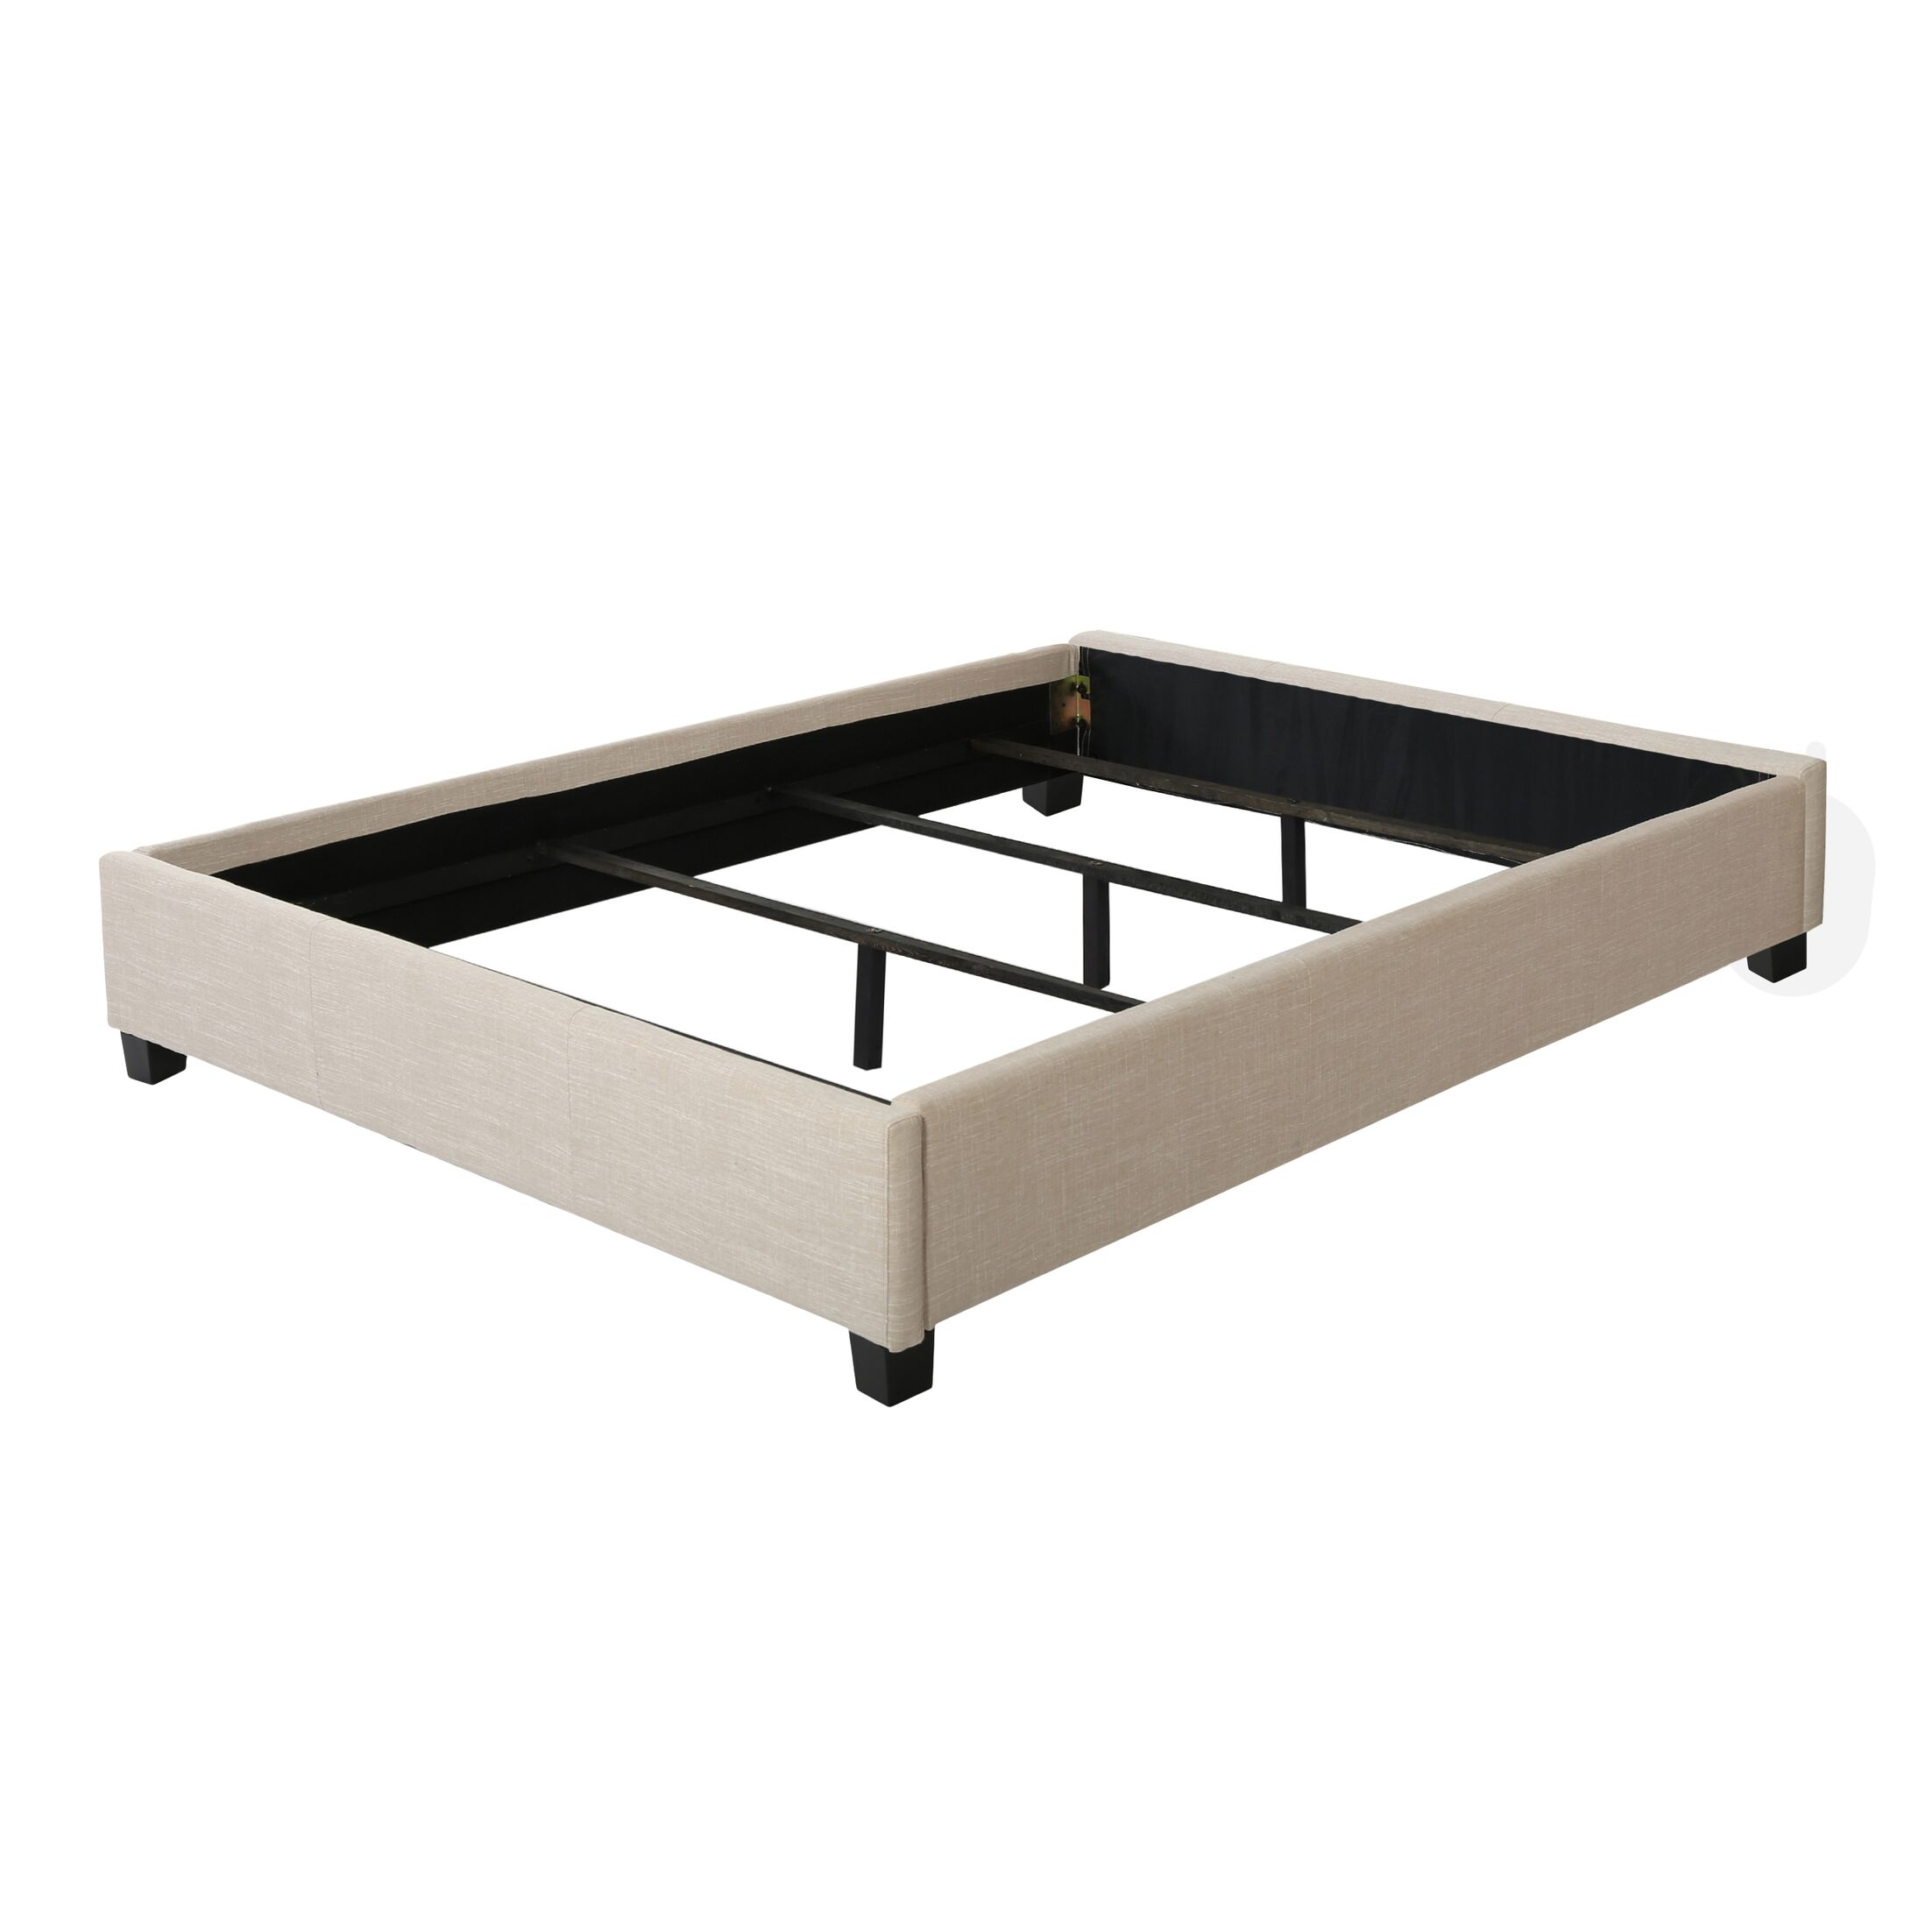 Almondsbury Bed Frame Size: King, Color: Light Gray